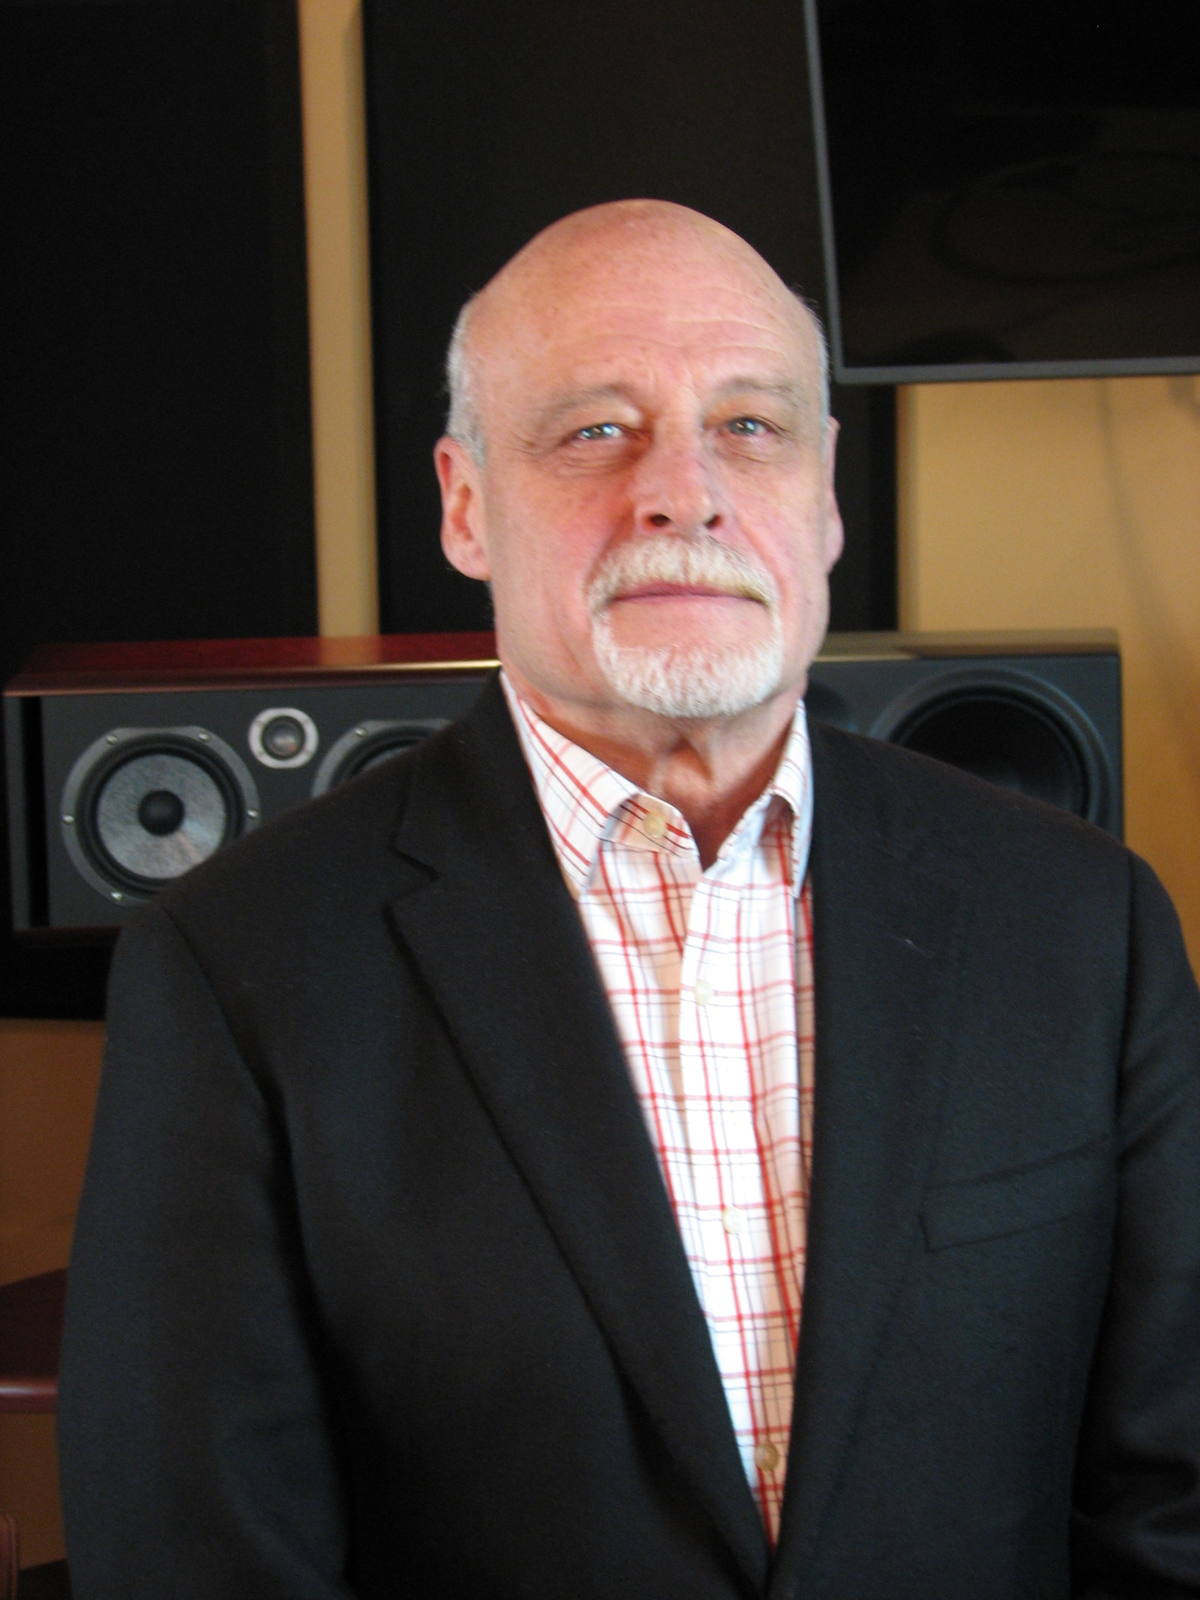 Synthax, distributor of RME, Ferrofish, myMix, Appsys Pro Audio and Digigram [NAMM Show Booth 14702, ACC North Hall], announced that it has appointed Michael Descoteau to the newly created position of Broadcast Sales Manager. Descoteau